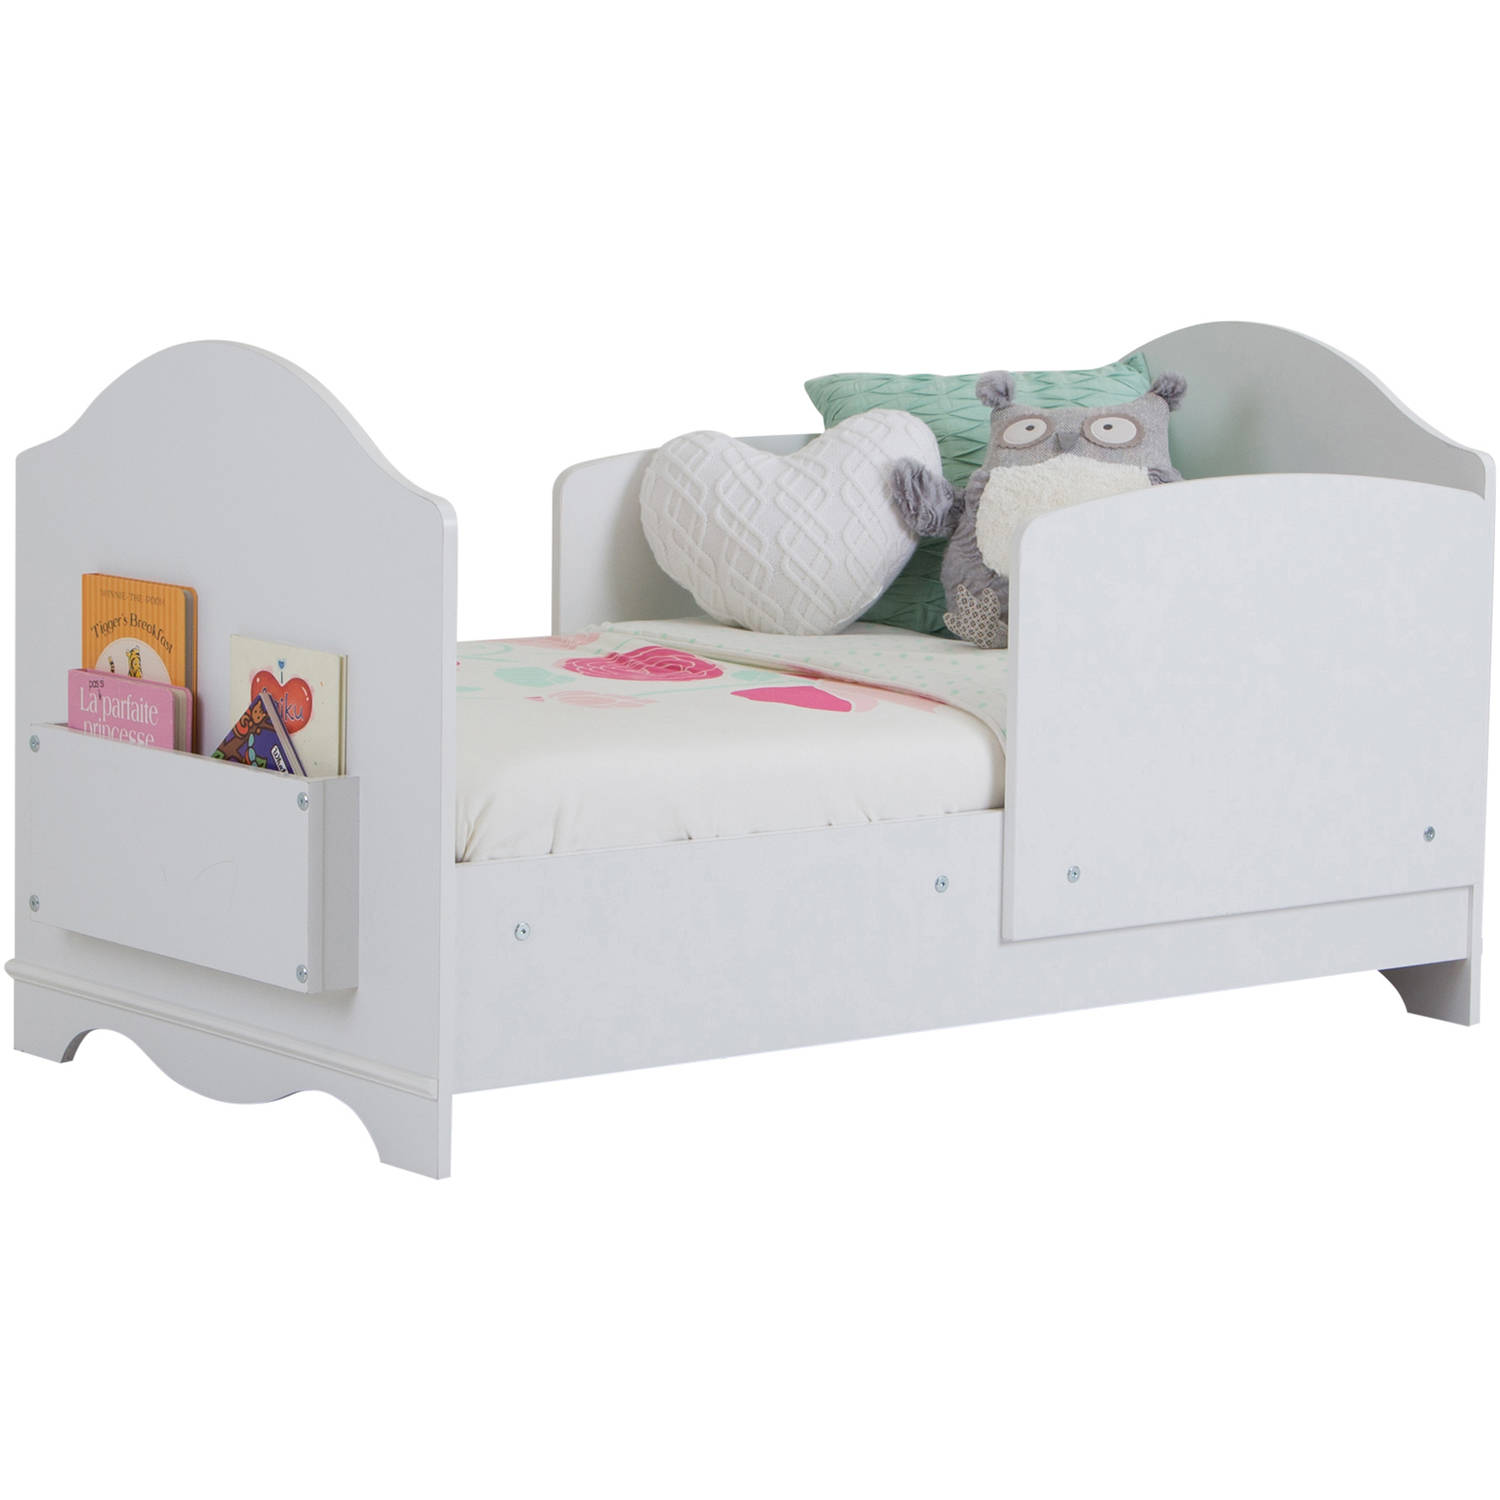 south shore savannah toddler bed to day bed, multiple finishes